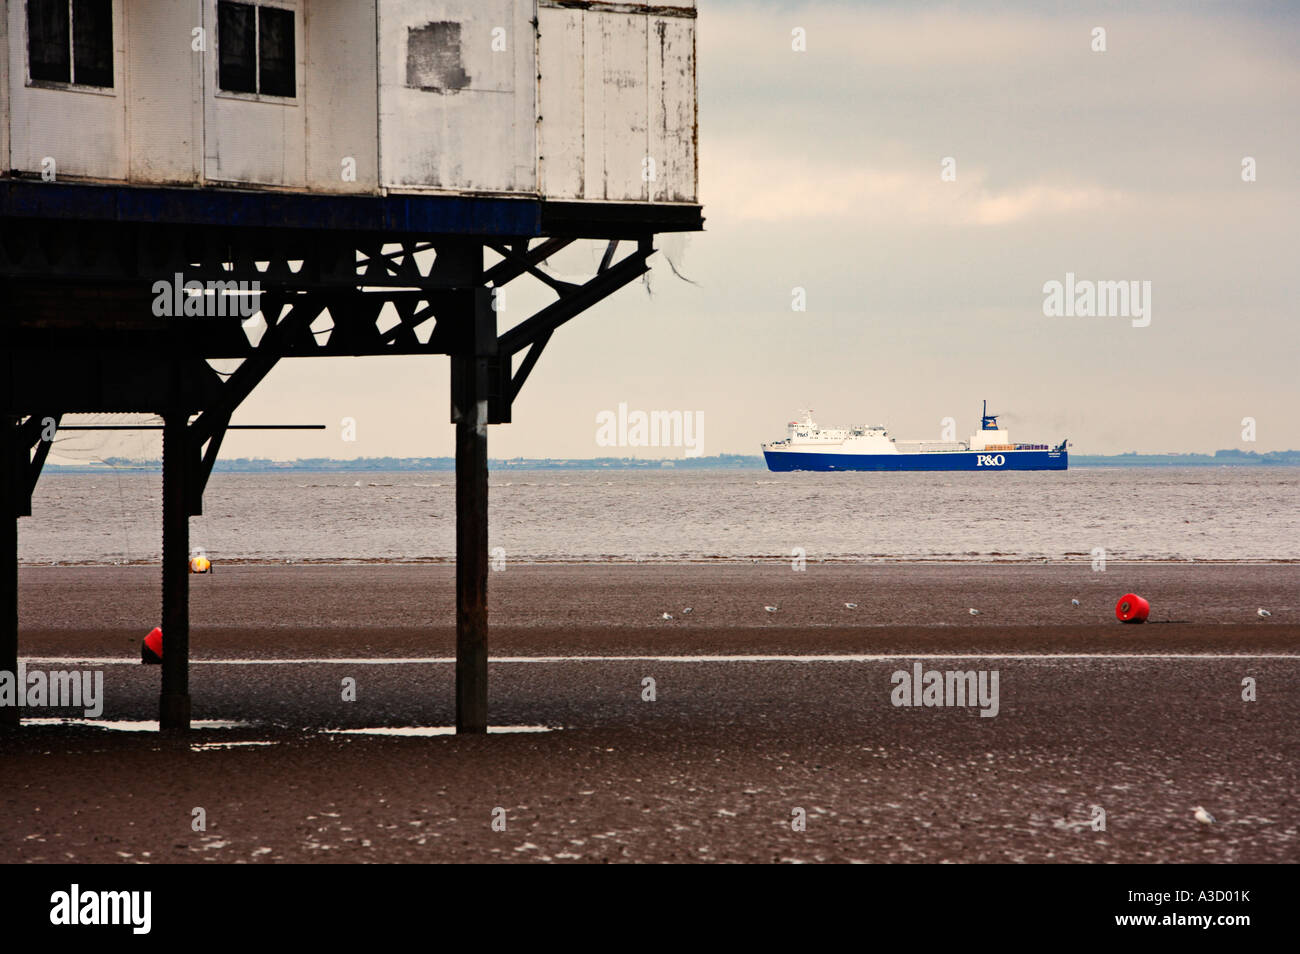 P&O ferry in the Humber Estuary off Cleethorpes, Lincolnshire, England, UK - with the per in foreground - Stock Image